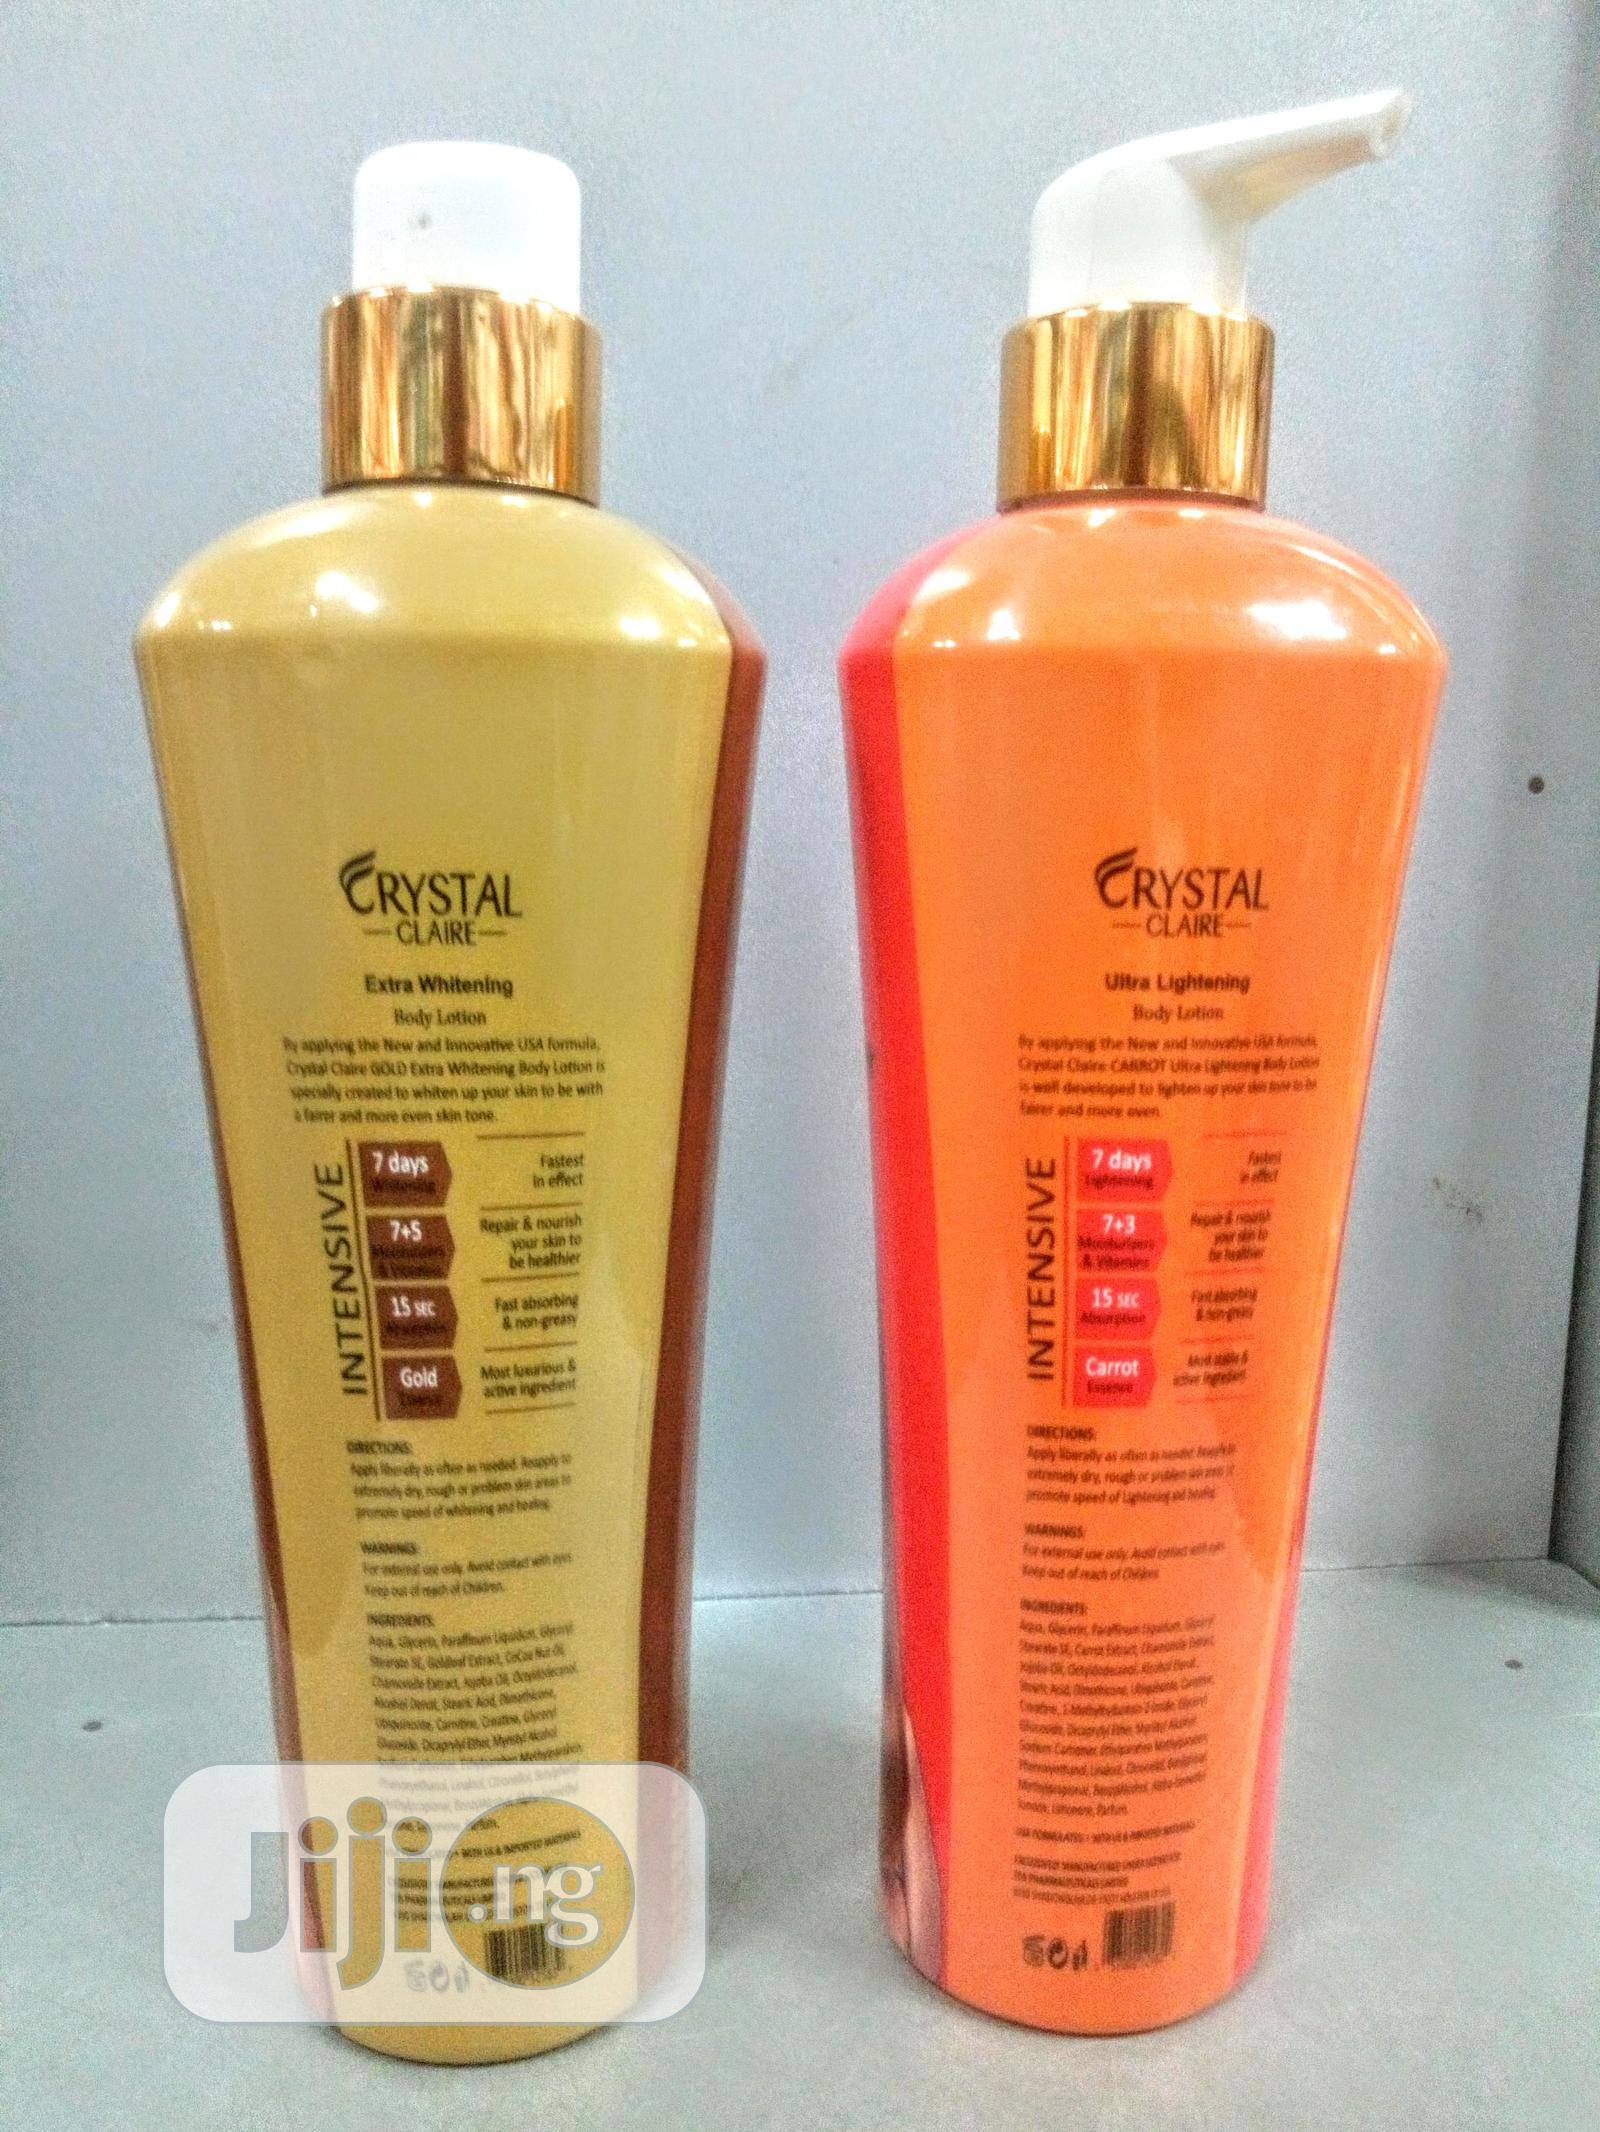 Crystal Claire Body Lotion -400ml | Skin Care for sale in Lagos State, Nigeria